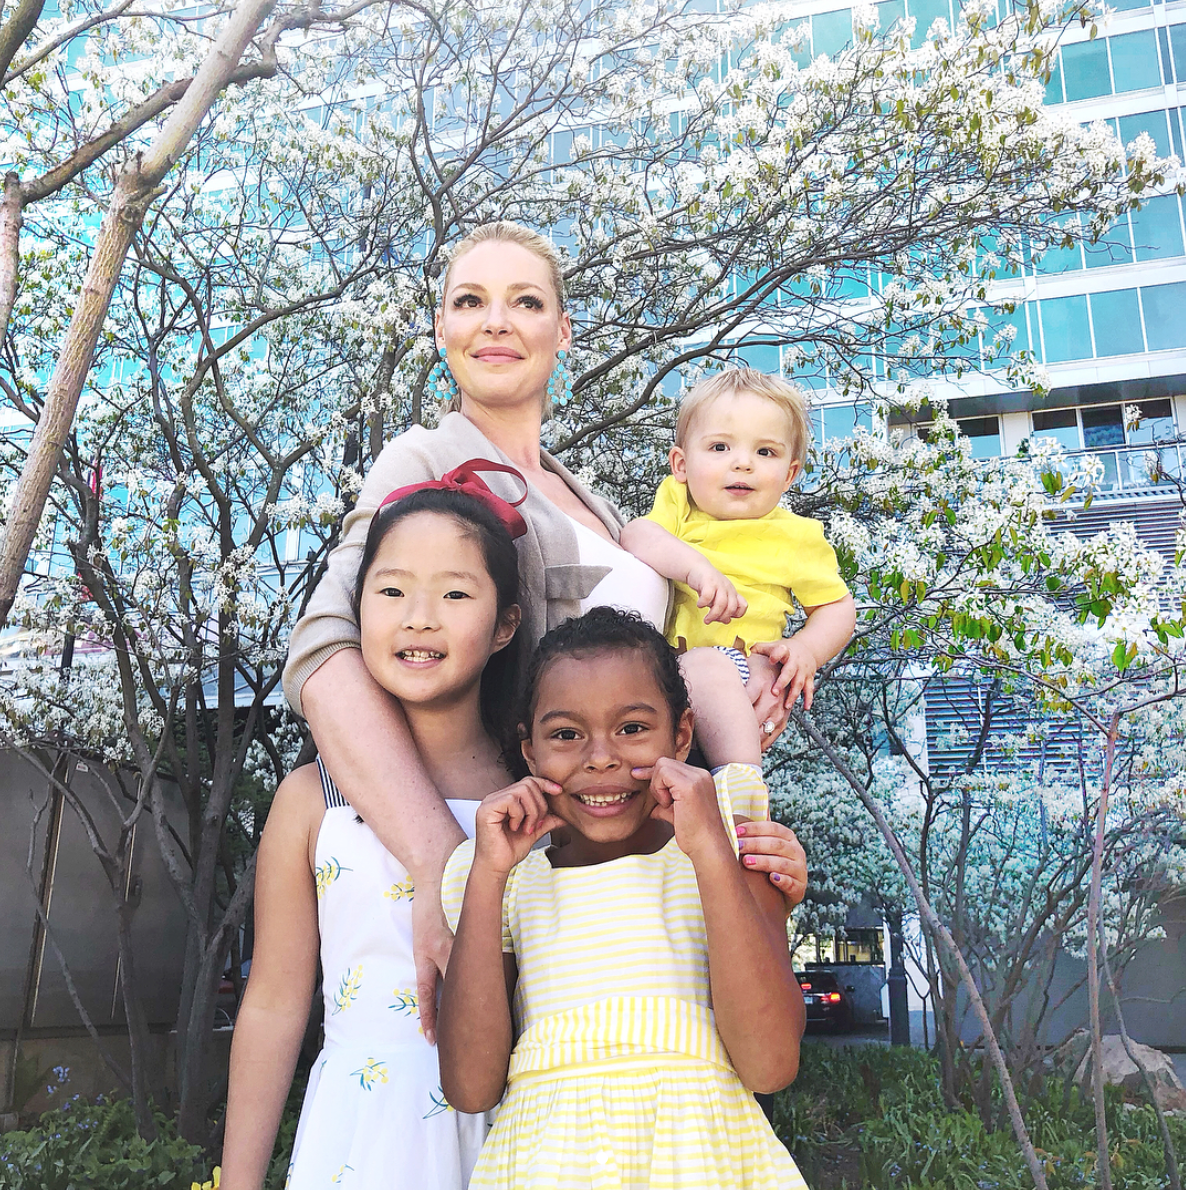 Katherine Heigl's Post About Her Mother's Day Request For ...